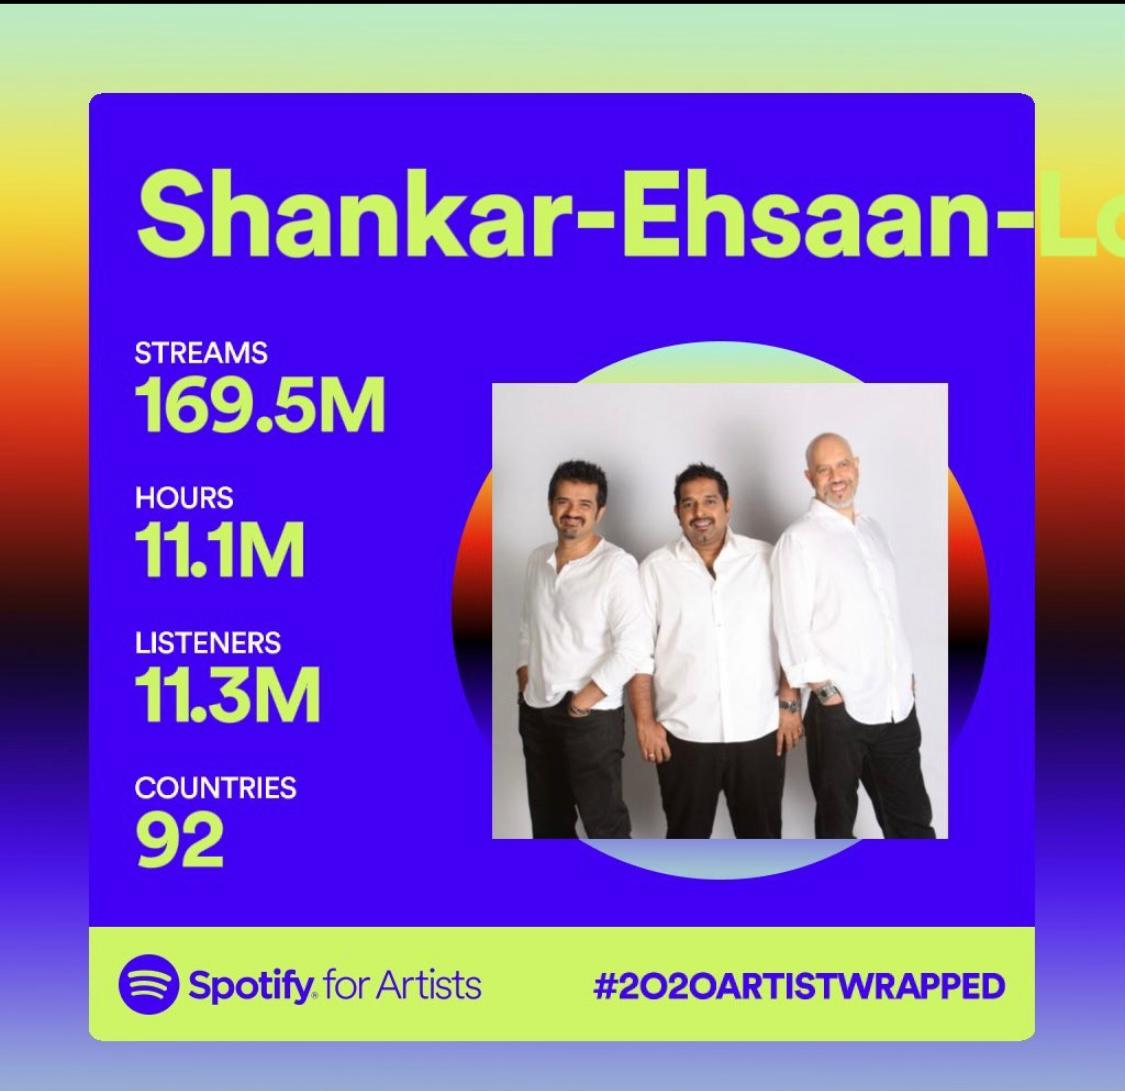 Thank you for all the love you all have showered us with over the year! @Shankar_Live @EhsaanNoorani @loy_mendonsa